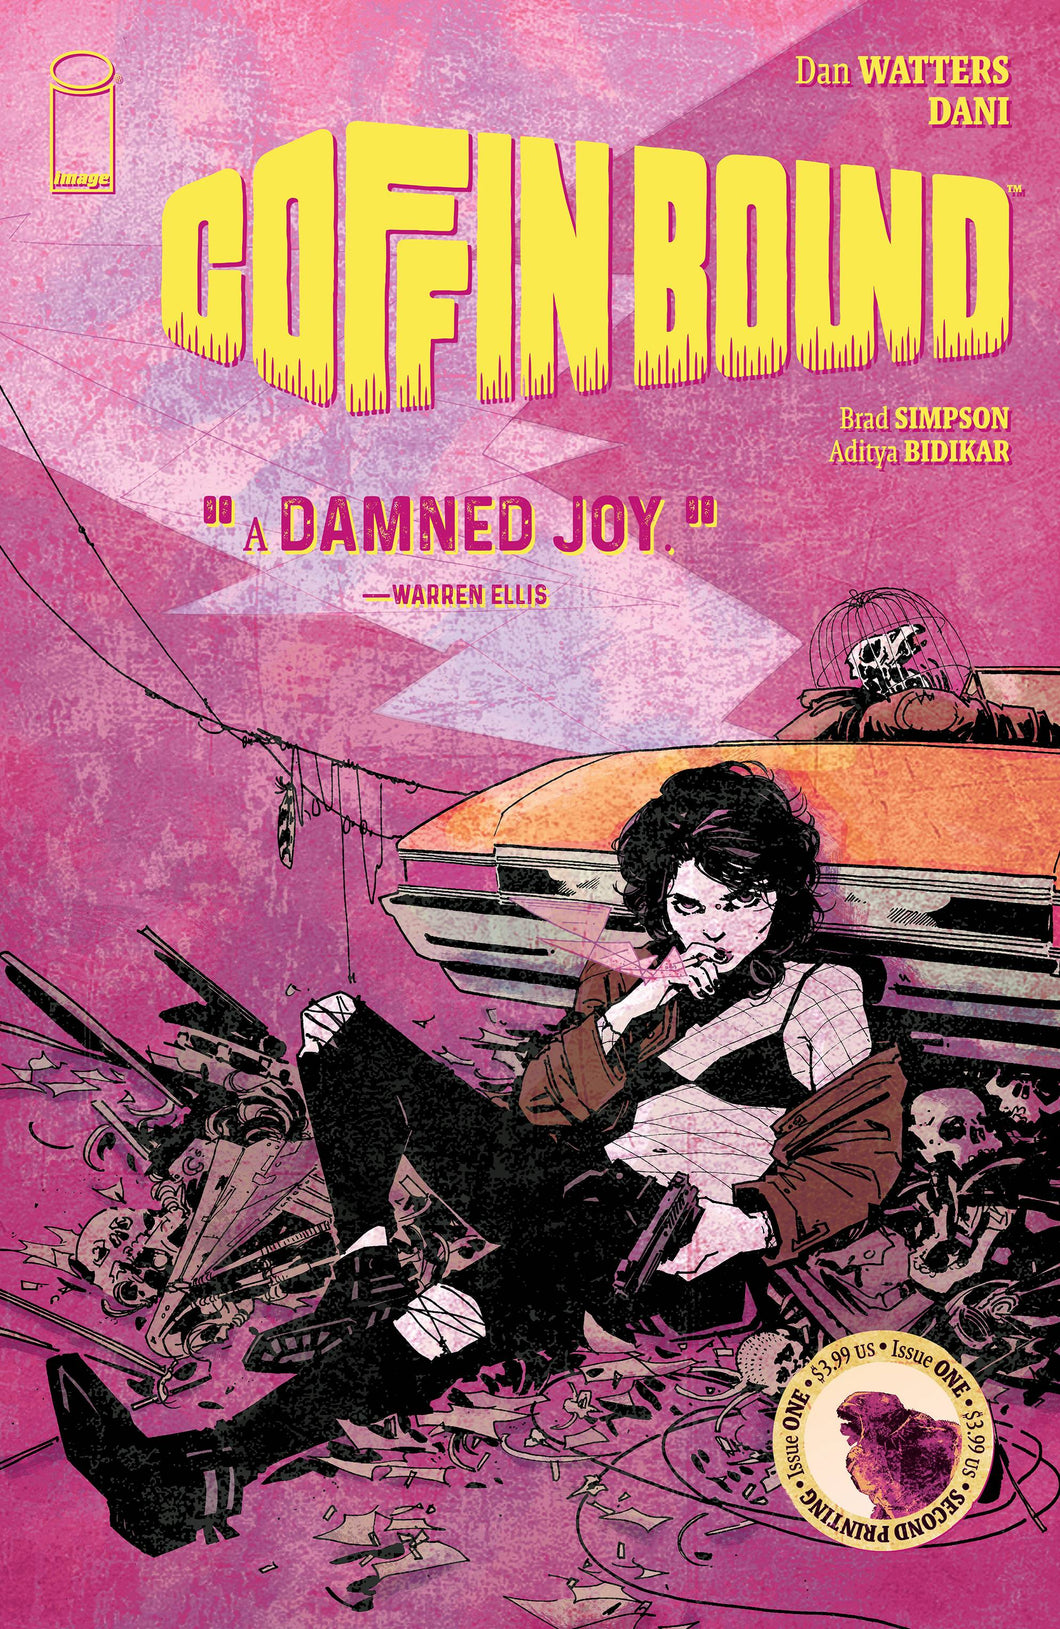 COFFIN BOUND #1-4 (2019 Image Comics) COMPLETE SET